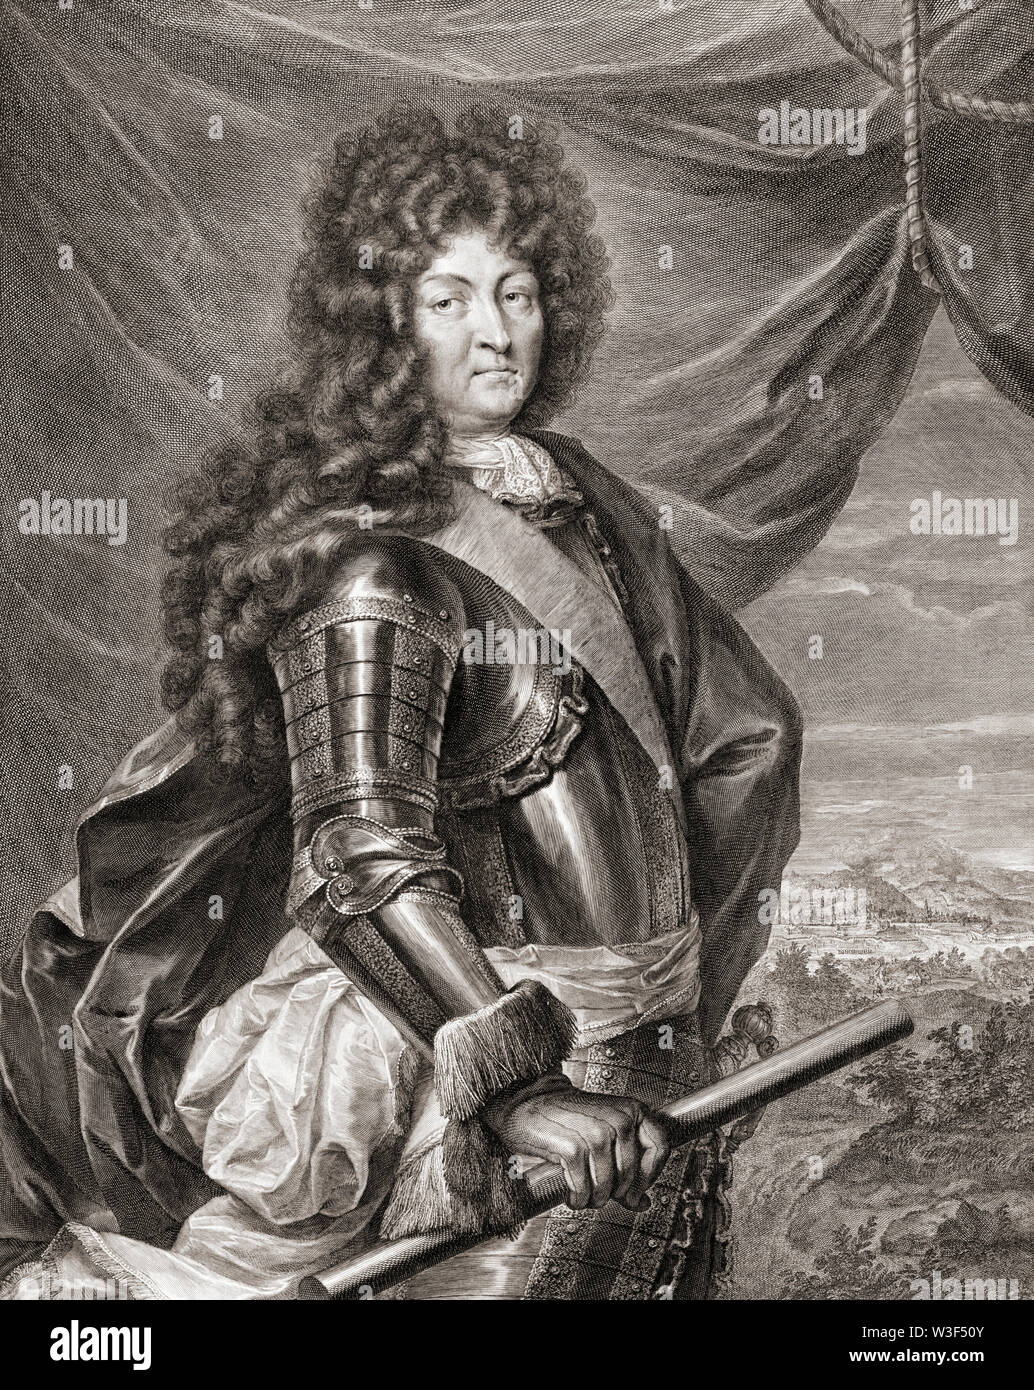 Louis XIV, 1638 – 1715, aka Louis the Great or the Sun King.  King of France.  After a painting by Jean de la Haye. Stock Photo